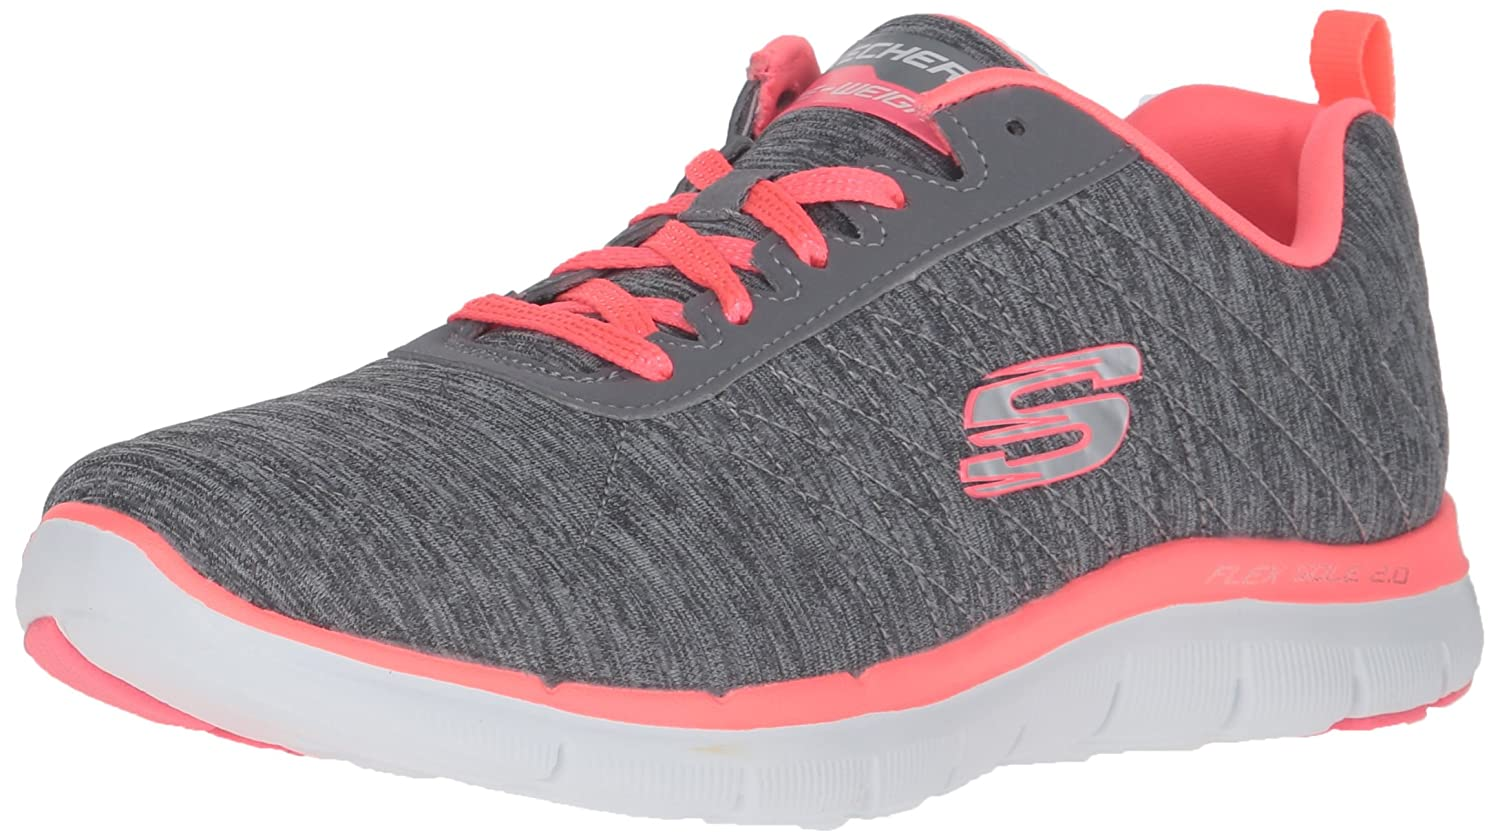 Skechers Women's Flex Appeal 2.0 Sneaker B01EOUW8RE 10 W US|Gray Coral